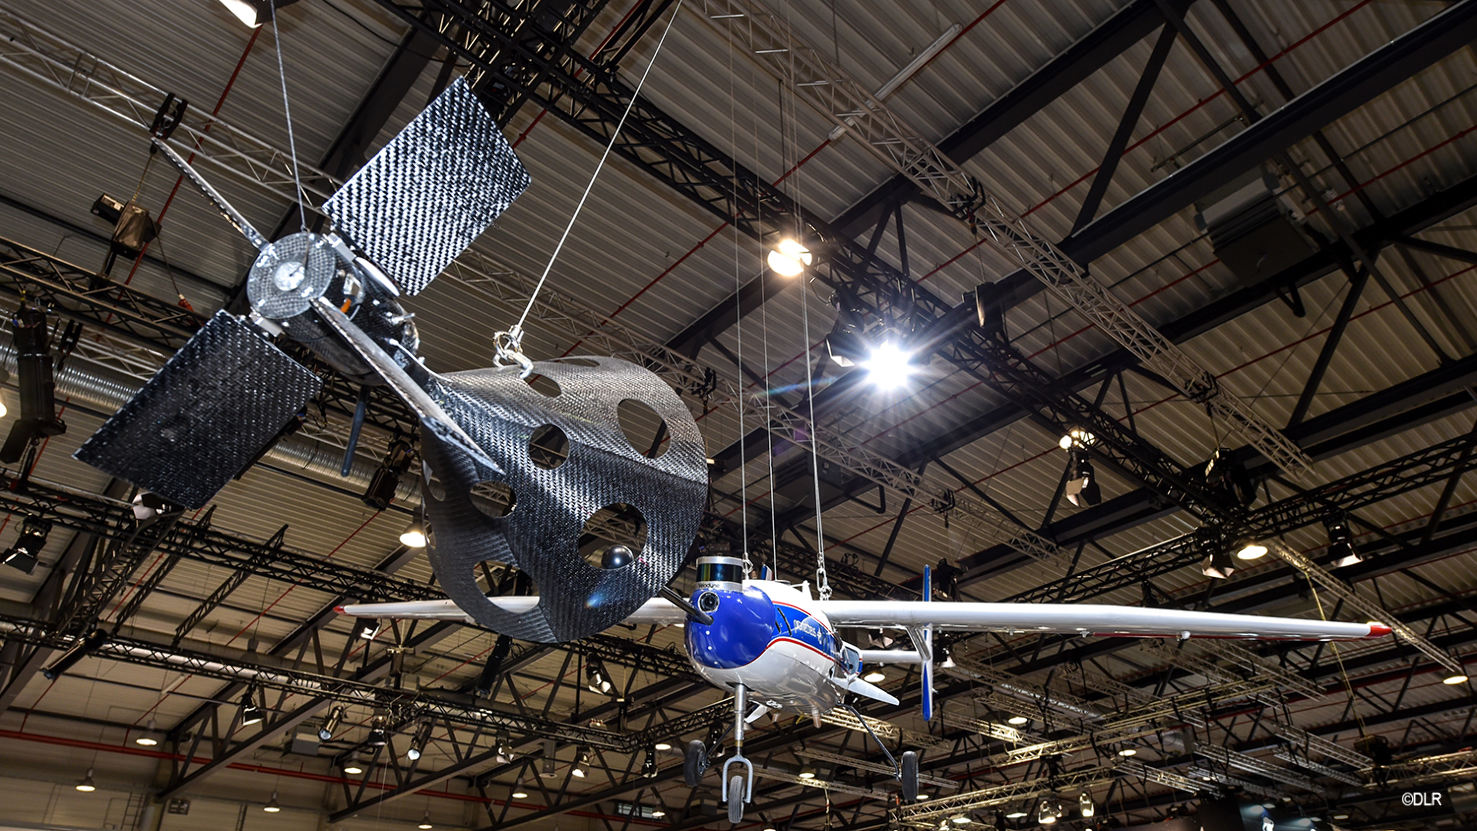 The German Aerospace Center DLR partners with Drone Rescue Systems to carry out the FALCon project